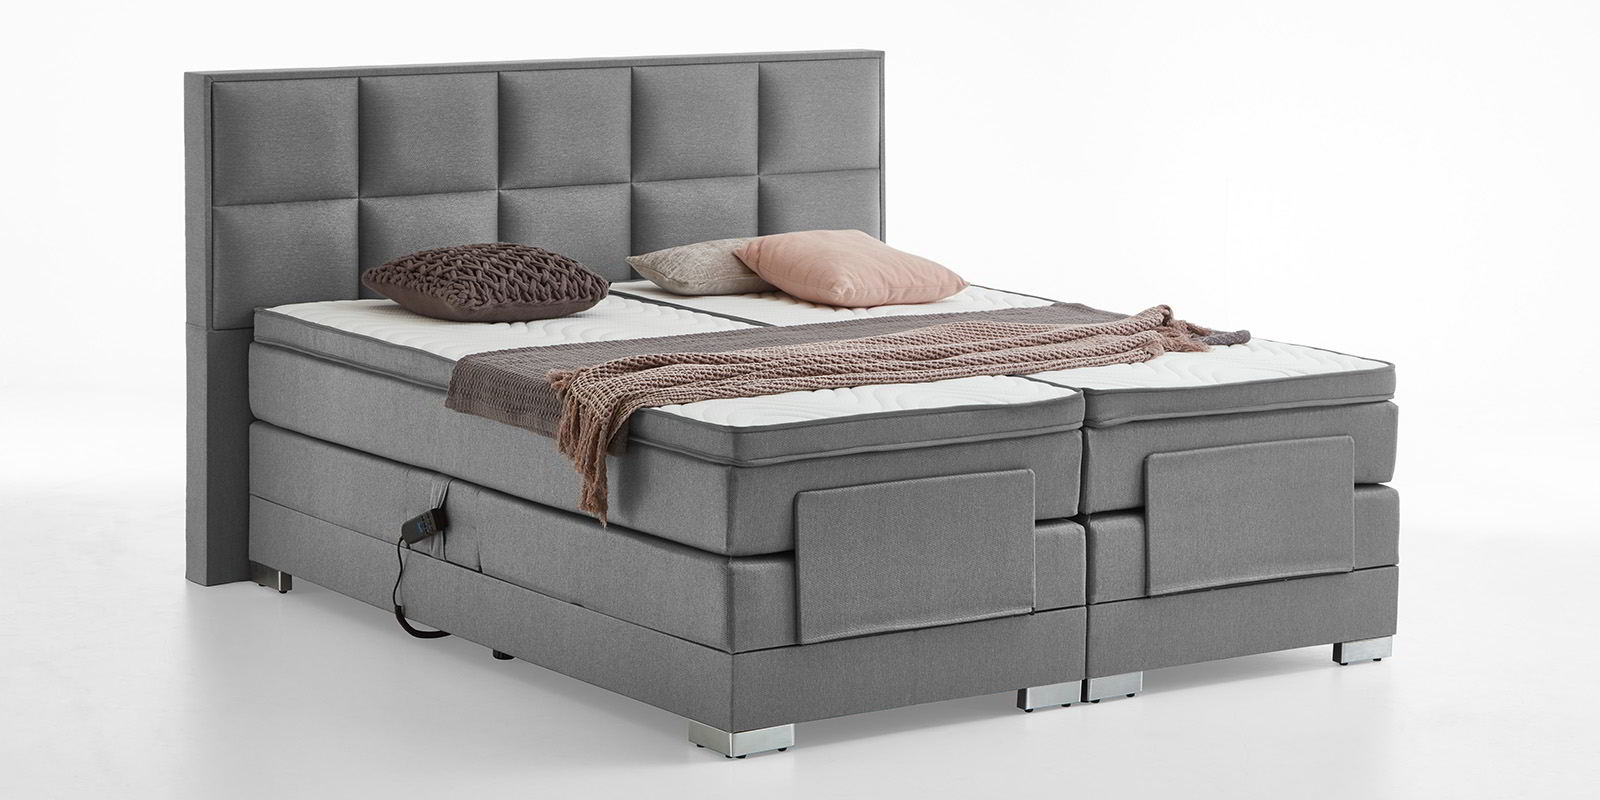 Glamorous Boxspringbett Verstellbar The Best Of Boxspringbett-elektrisch-verstellbar-grau-oxford-8